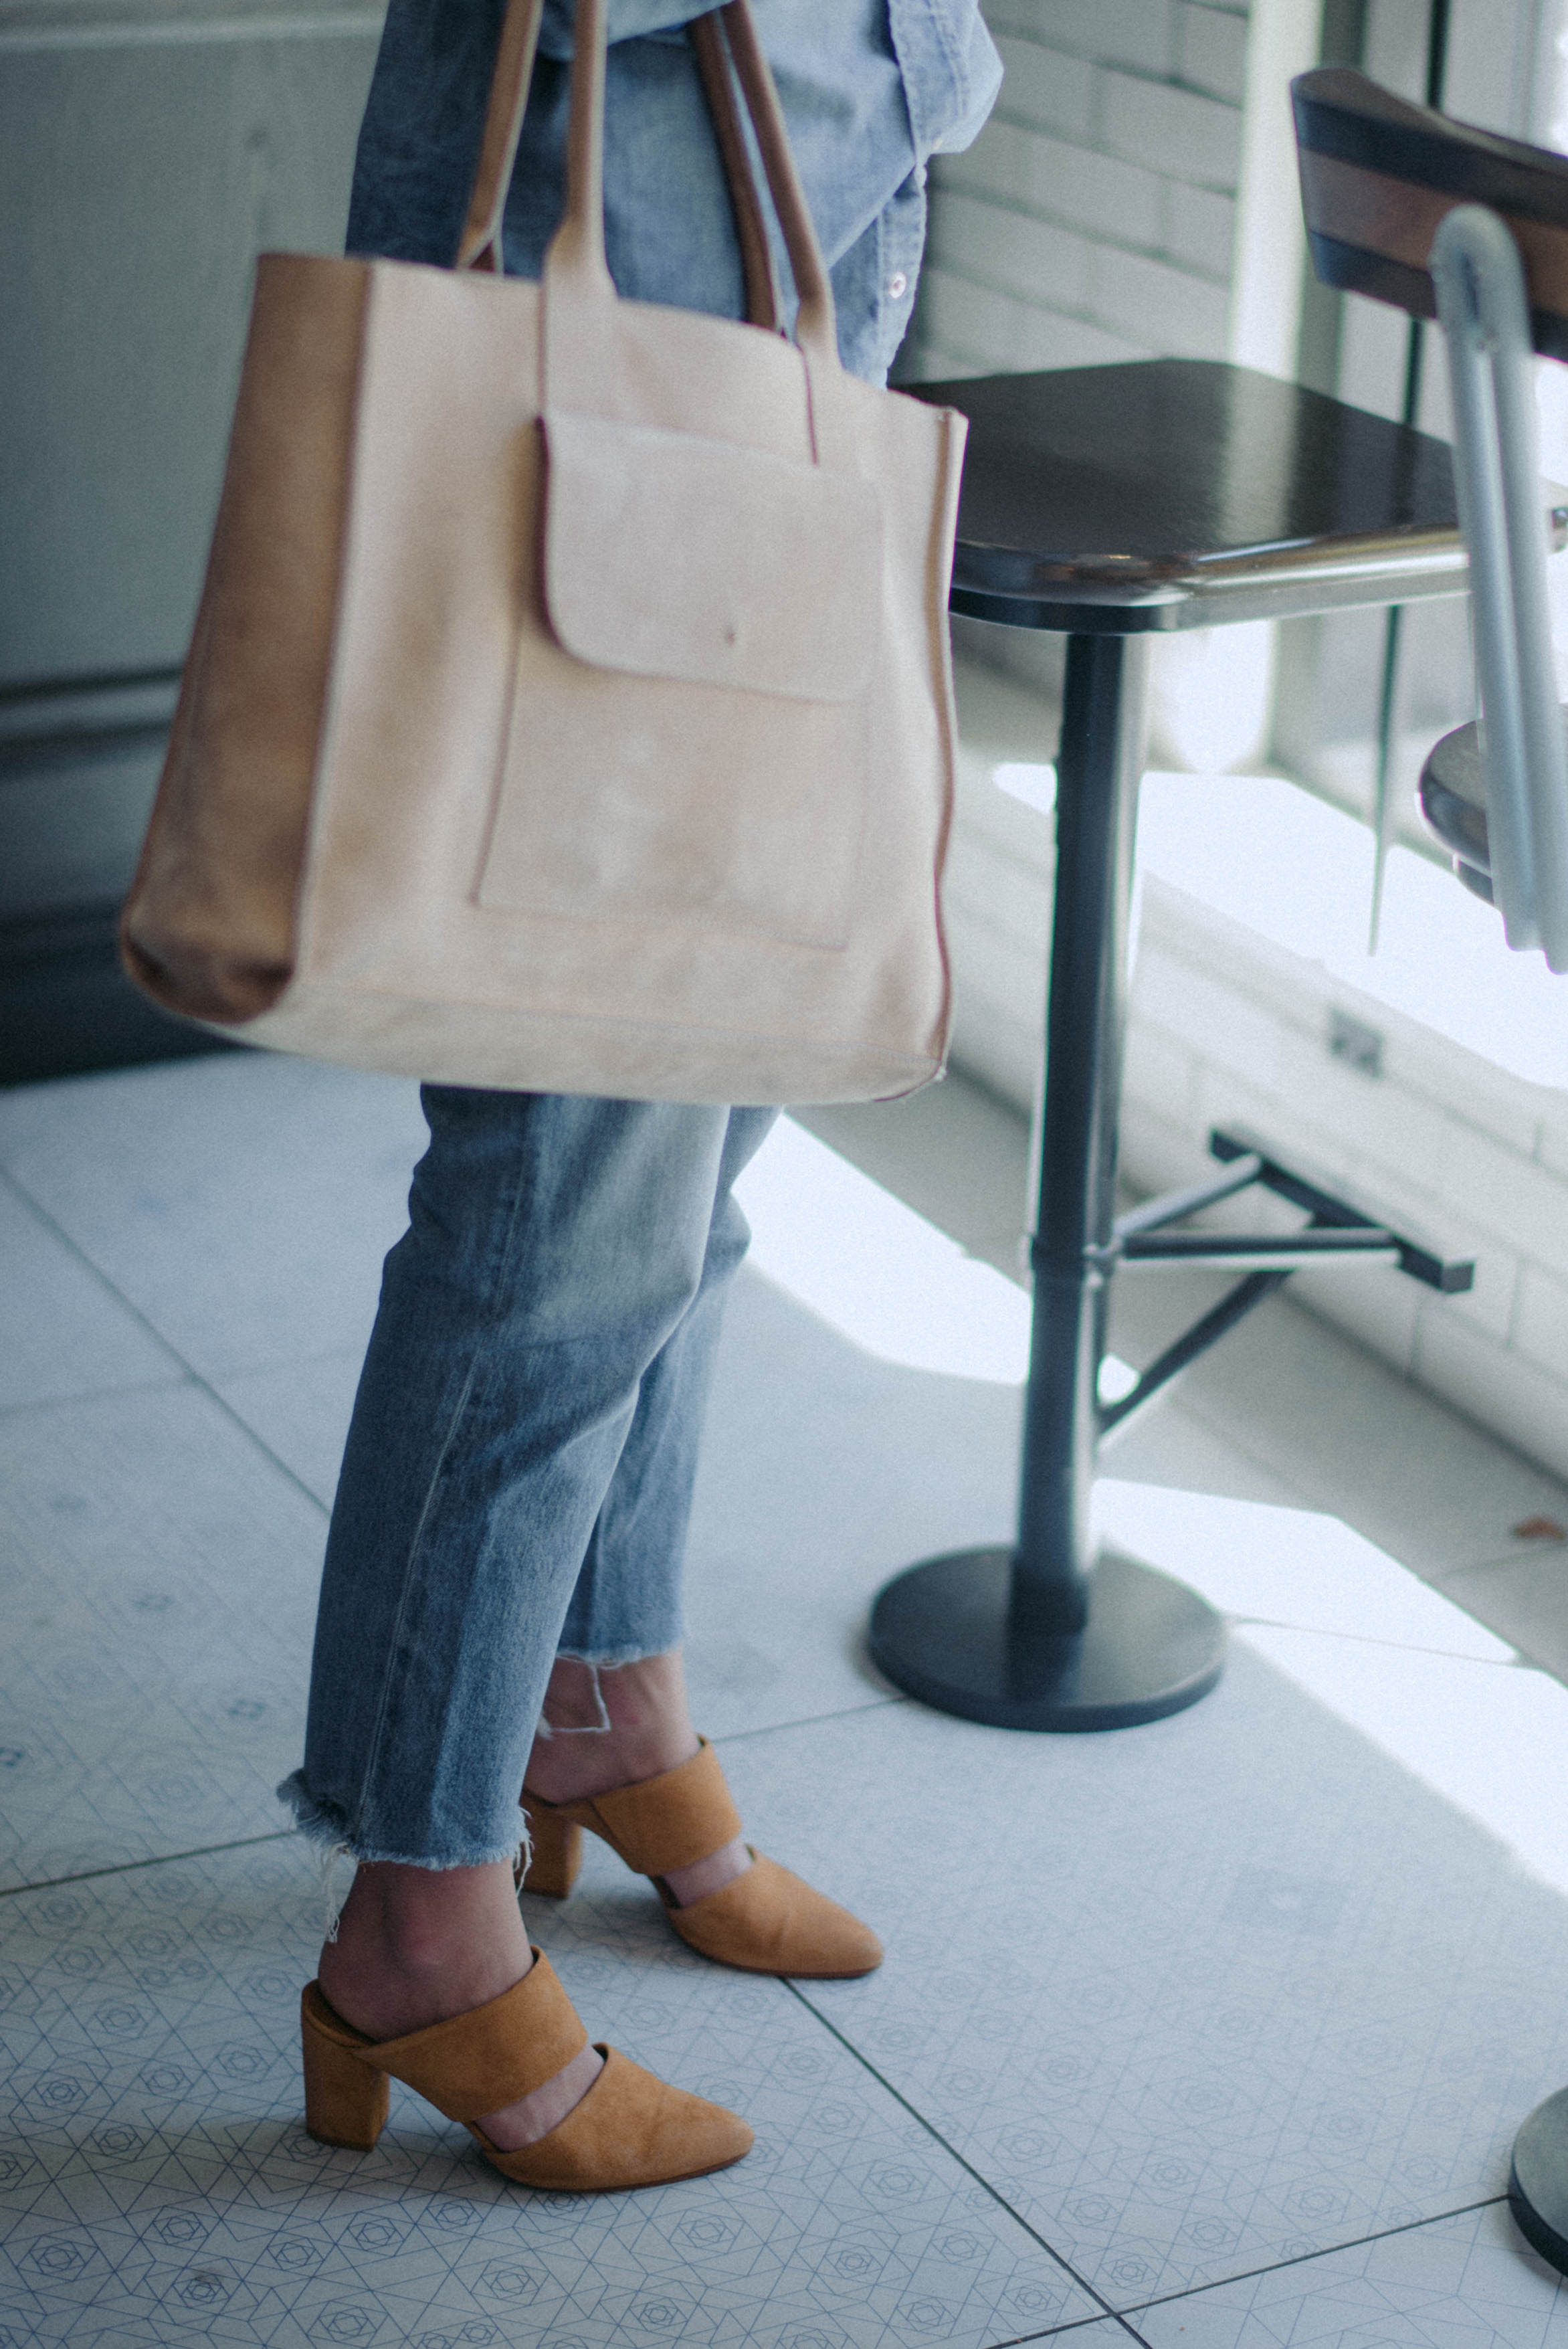 Denim on denim outfit with leather details // A Week Of  Nashville-Chic Ethical Outfits With Jordan Soderholm, Fashion Director At ABLE on The Good Trade